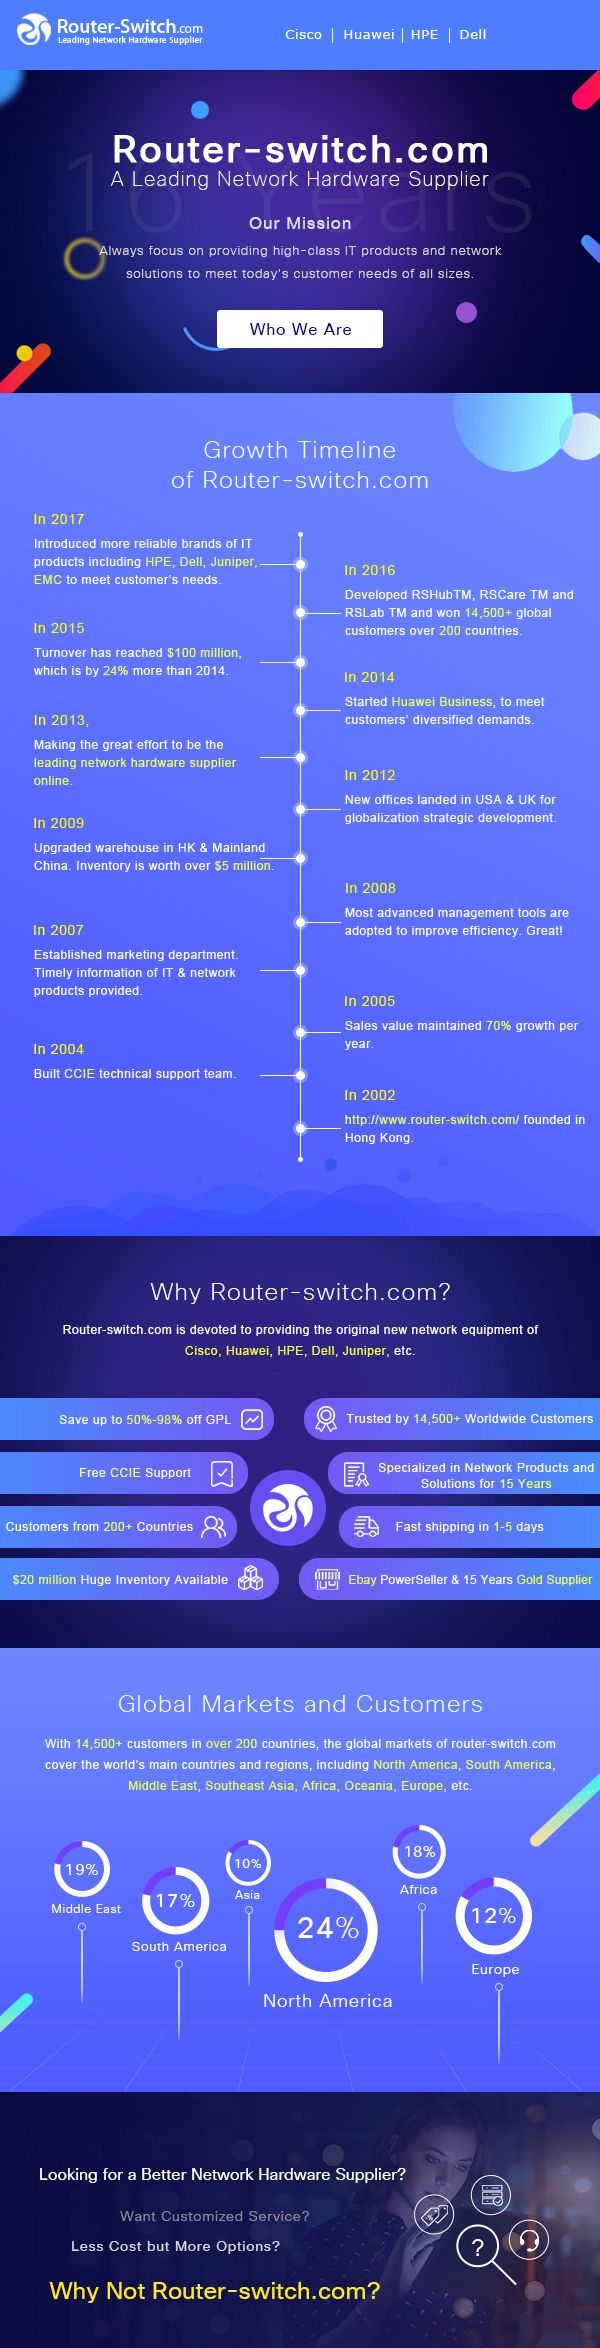 Looking for a Better Network Hardware Supplier? Want Customized Service? Less Cost but More Options Why Not Router-switch.com? Welcome to Read our story!